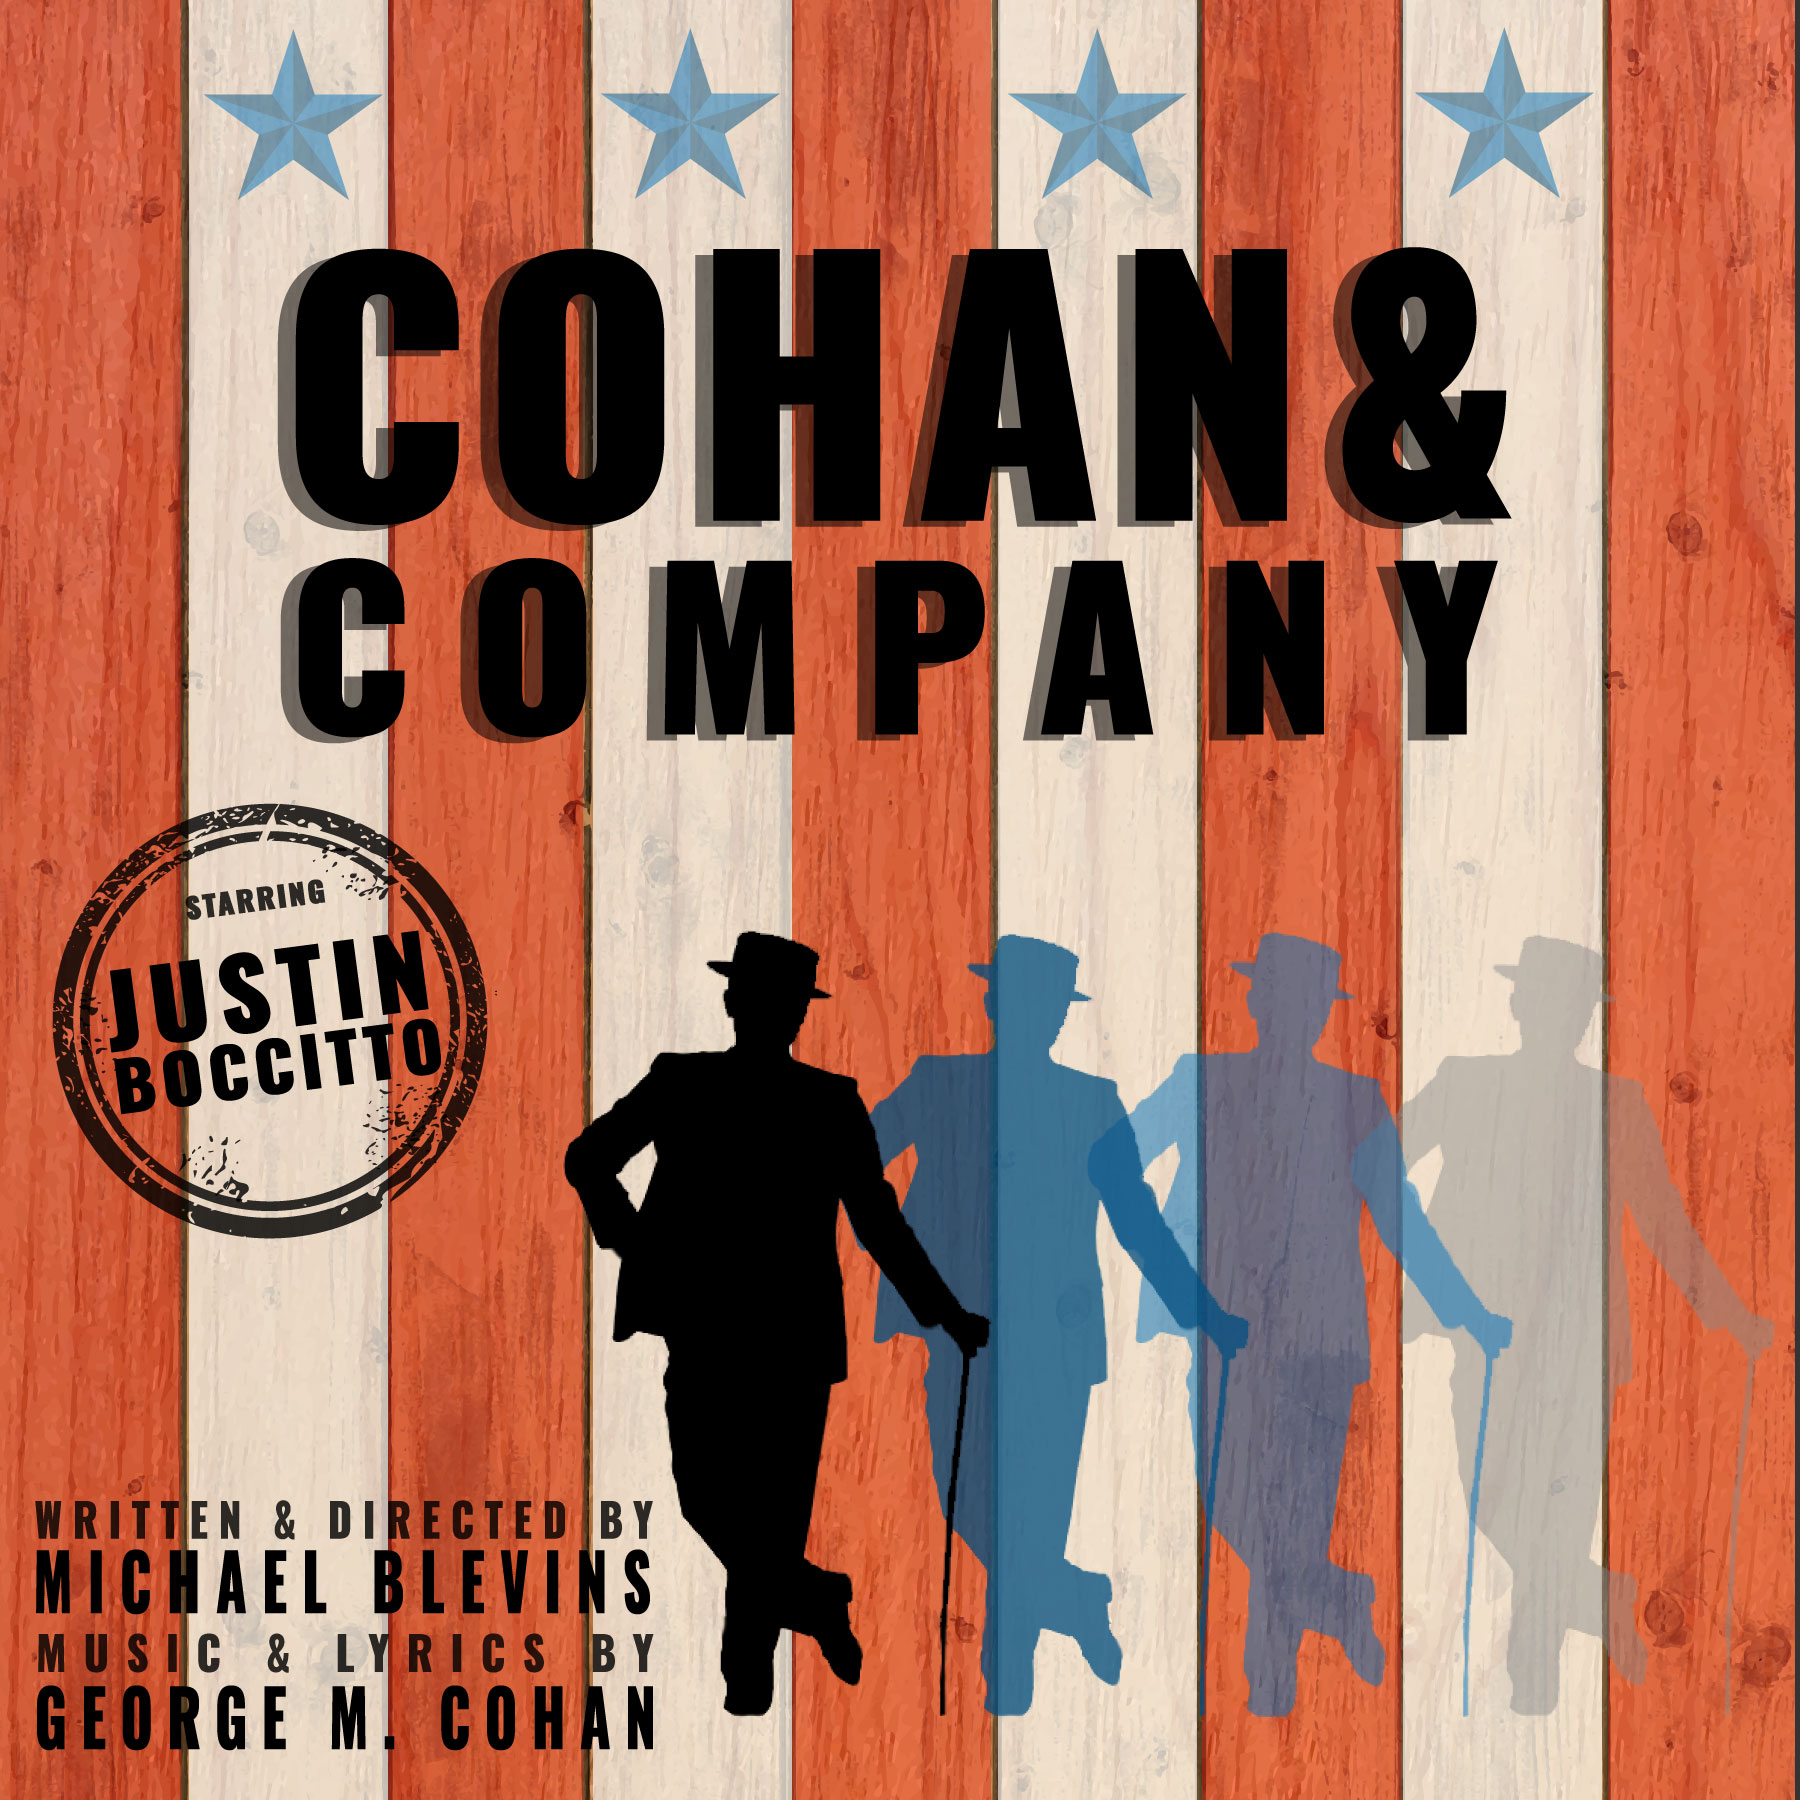 Cohan & Company |  Centenary Stage Company  | New York City |  Justin Boccitto  - Theatre, Film, Music, Dance | Director, Choreographer, Teacher | Design by  REDO U Web Design